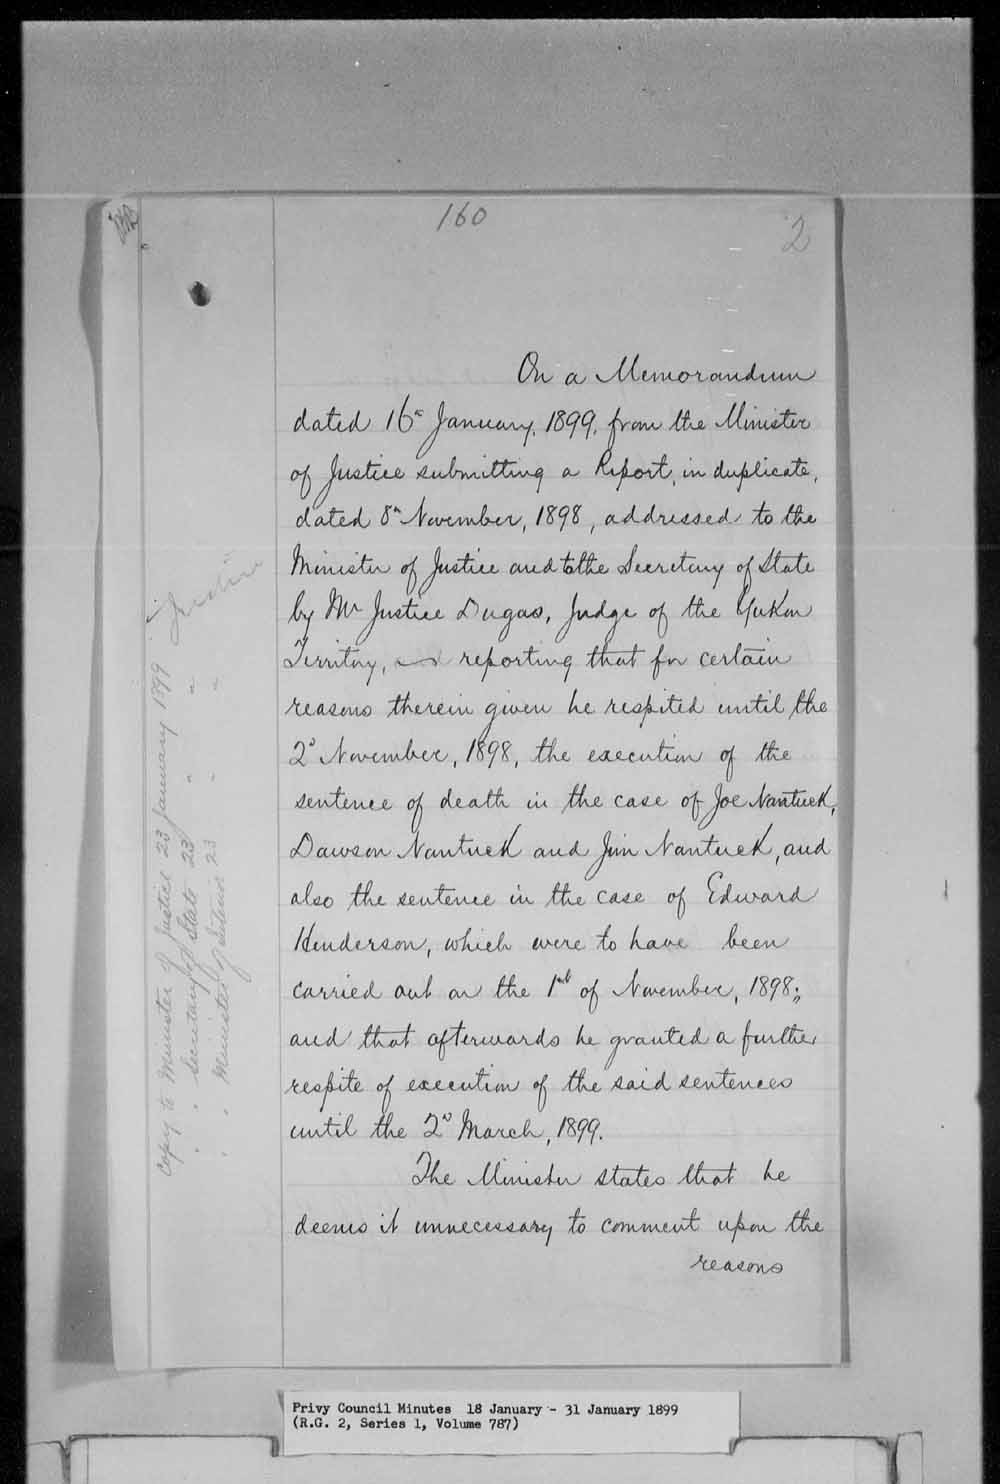 Capital Cases of Joe Dawson Jim Nantuck and Edward Henderson disputed by Judge Dugas until 1899/03/02 but it is  recommended that the decision arrived at by O.C. [Order in Council] 1898/09/23 be adhered to and that the proper officer be so  informed - Min